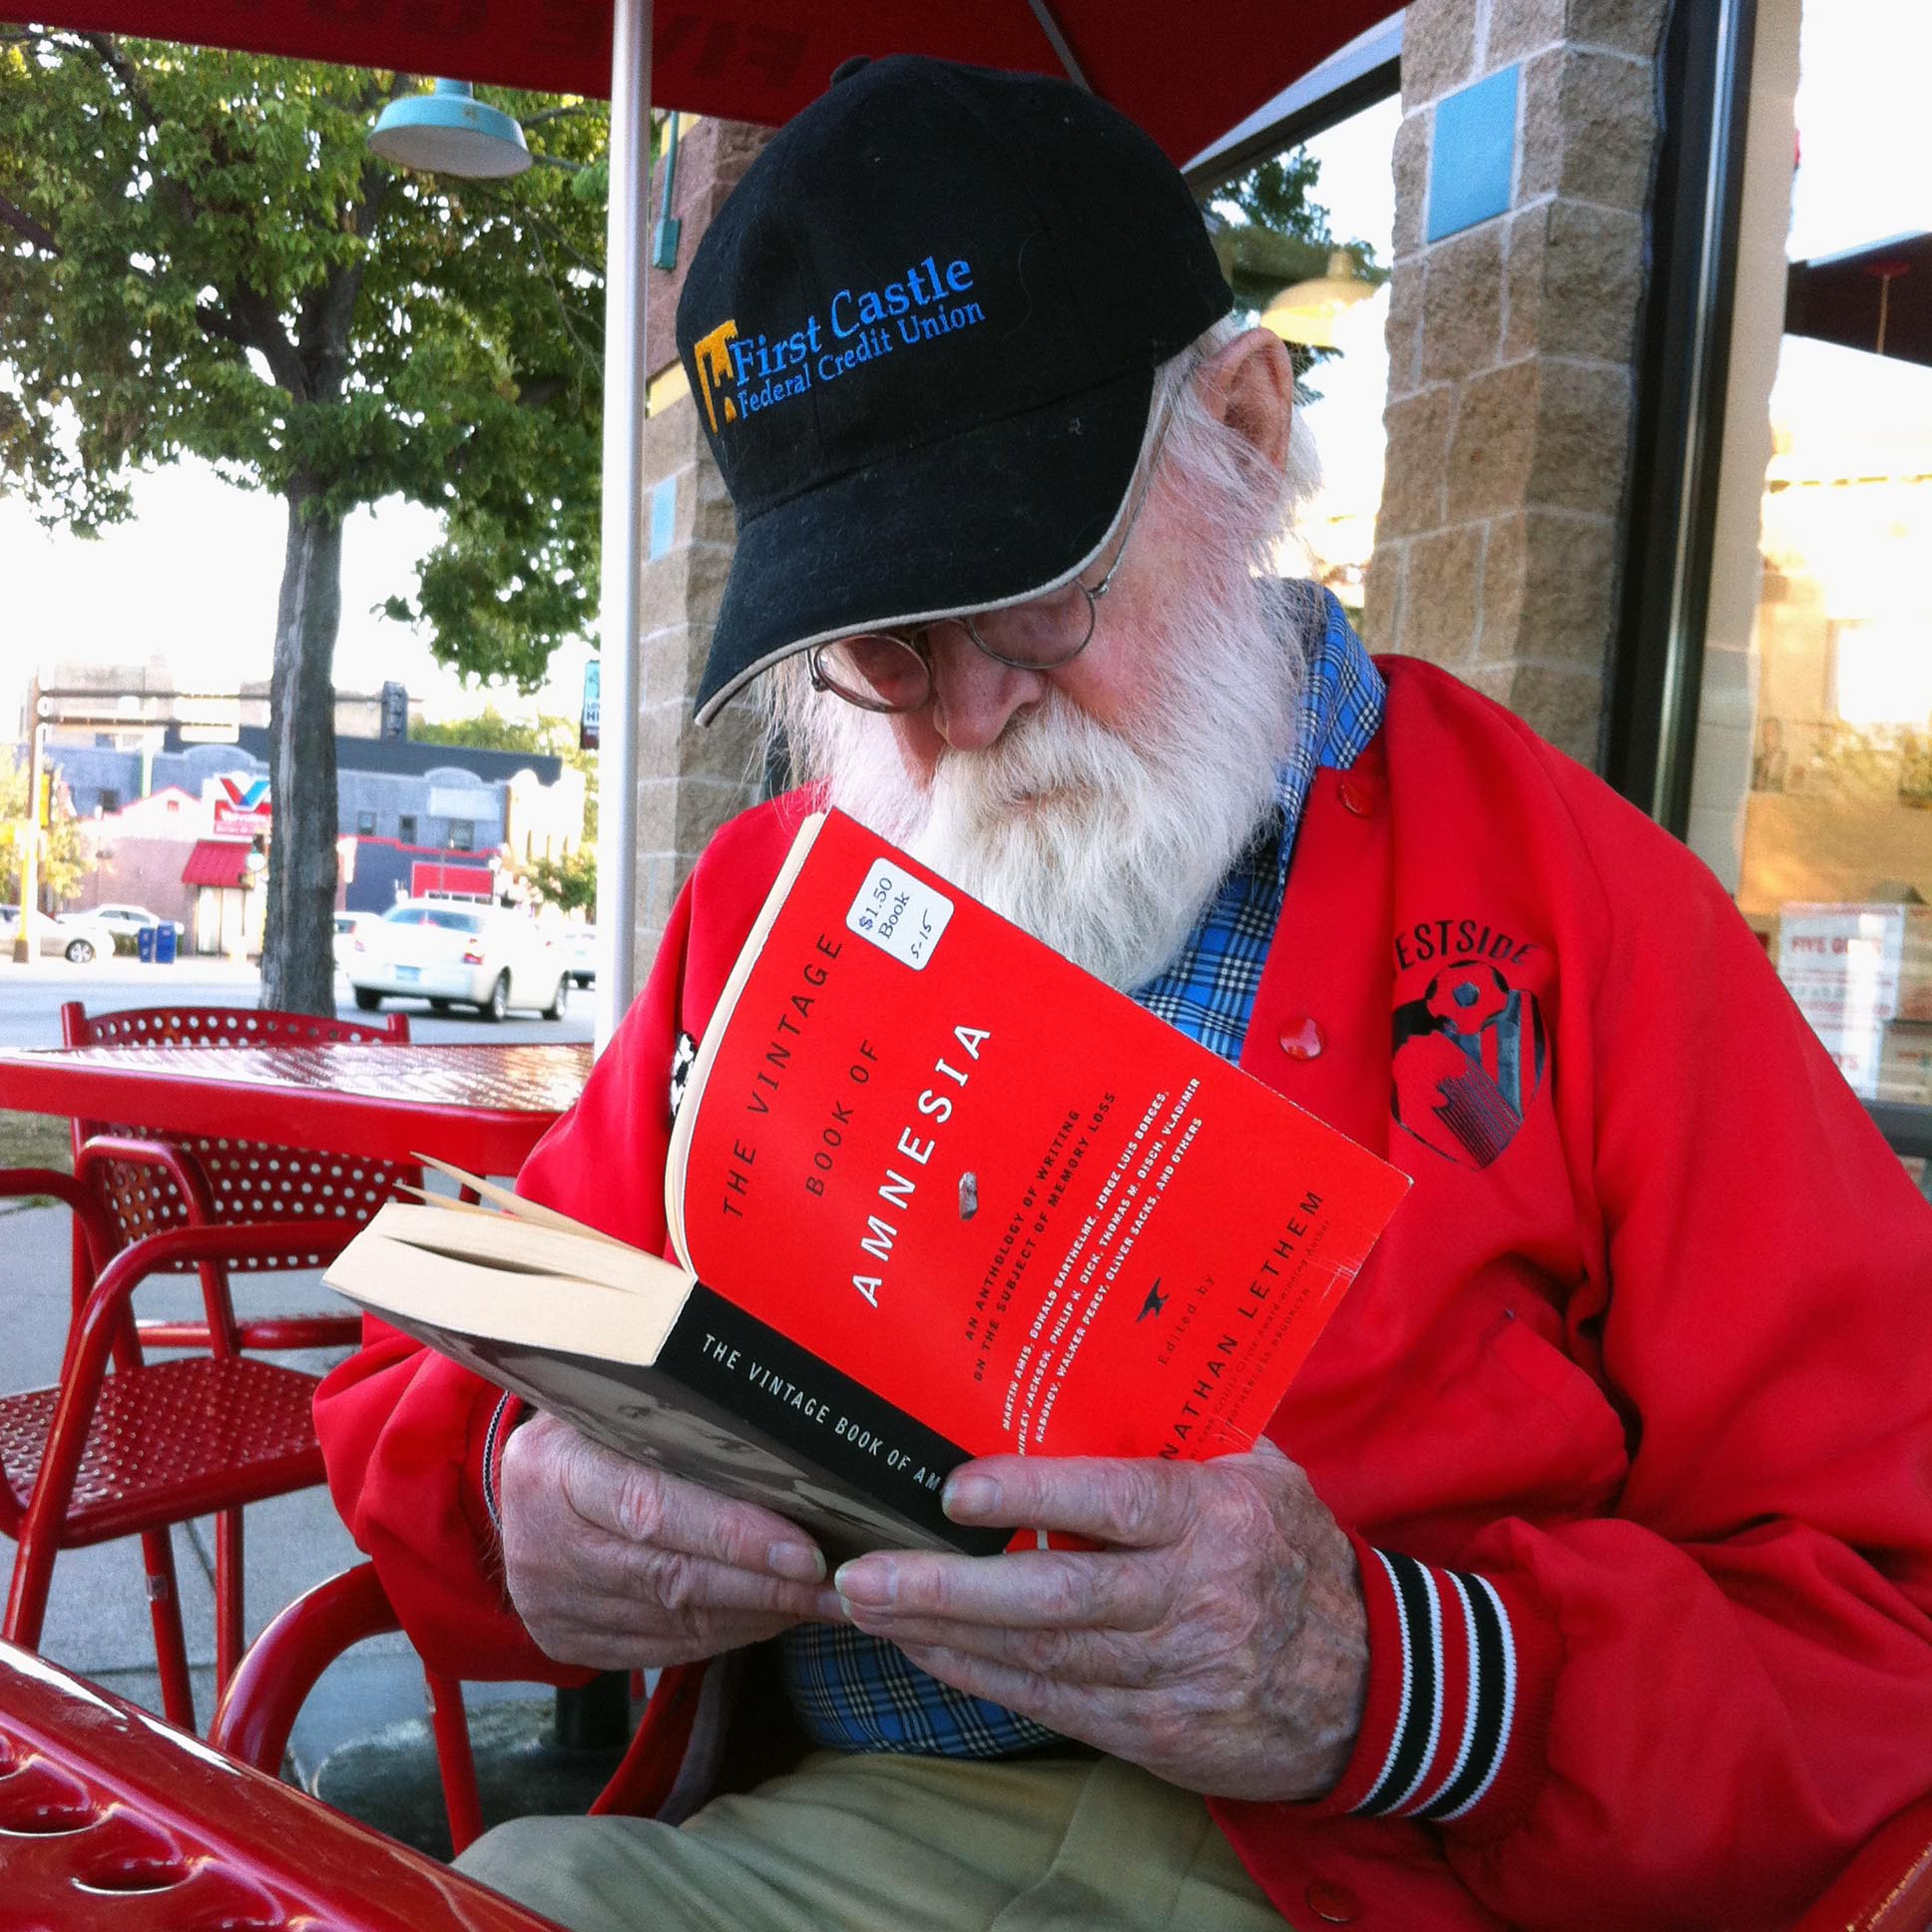 Tank sits at a red iron table outside, wearing a black baseball cap and a red windbreaker, engrossed in a red-covered book with a black spine.